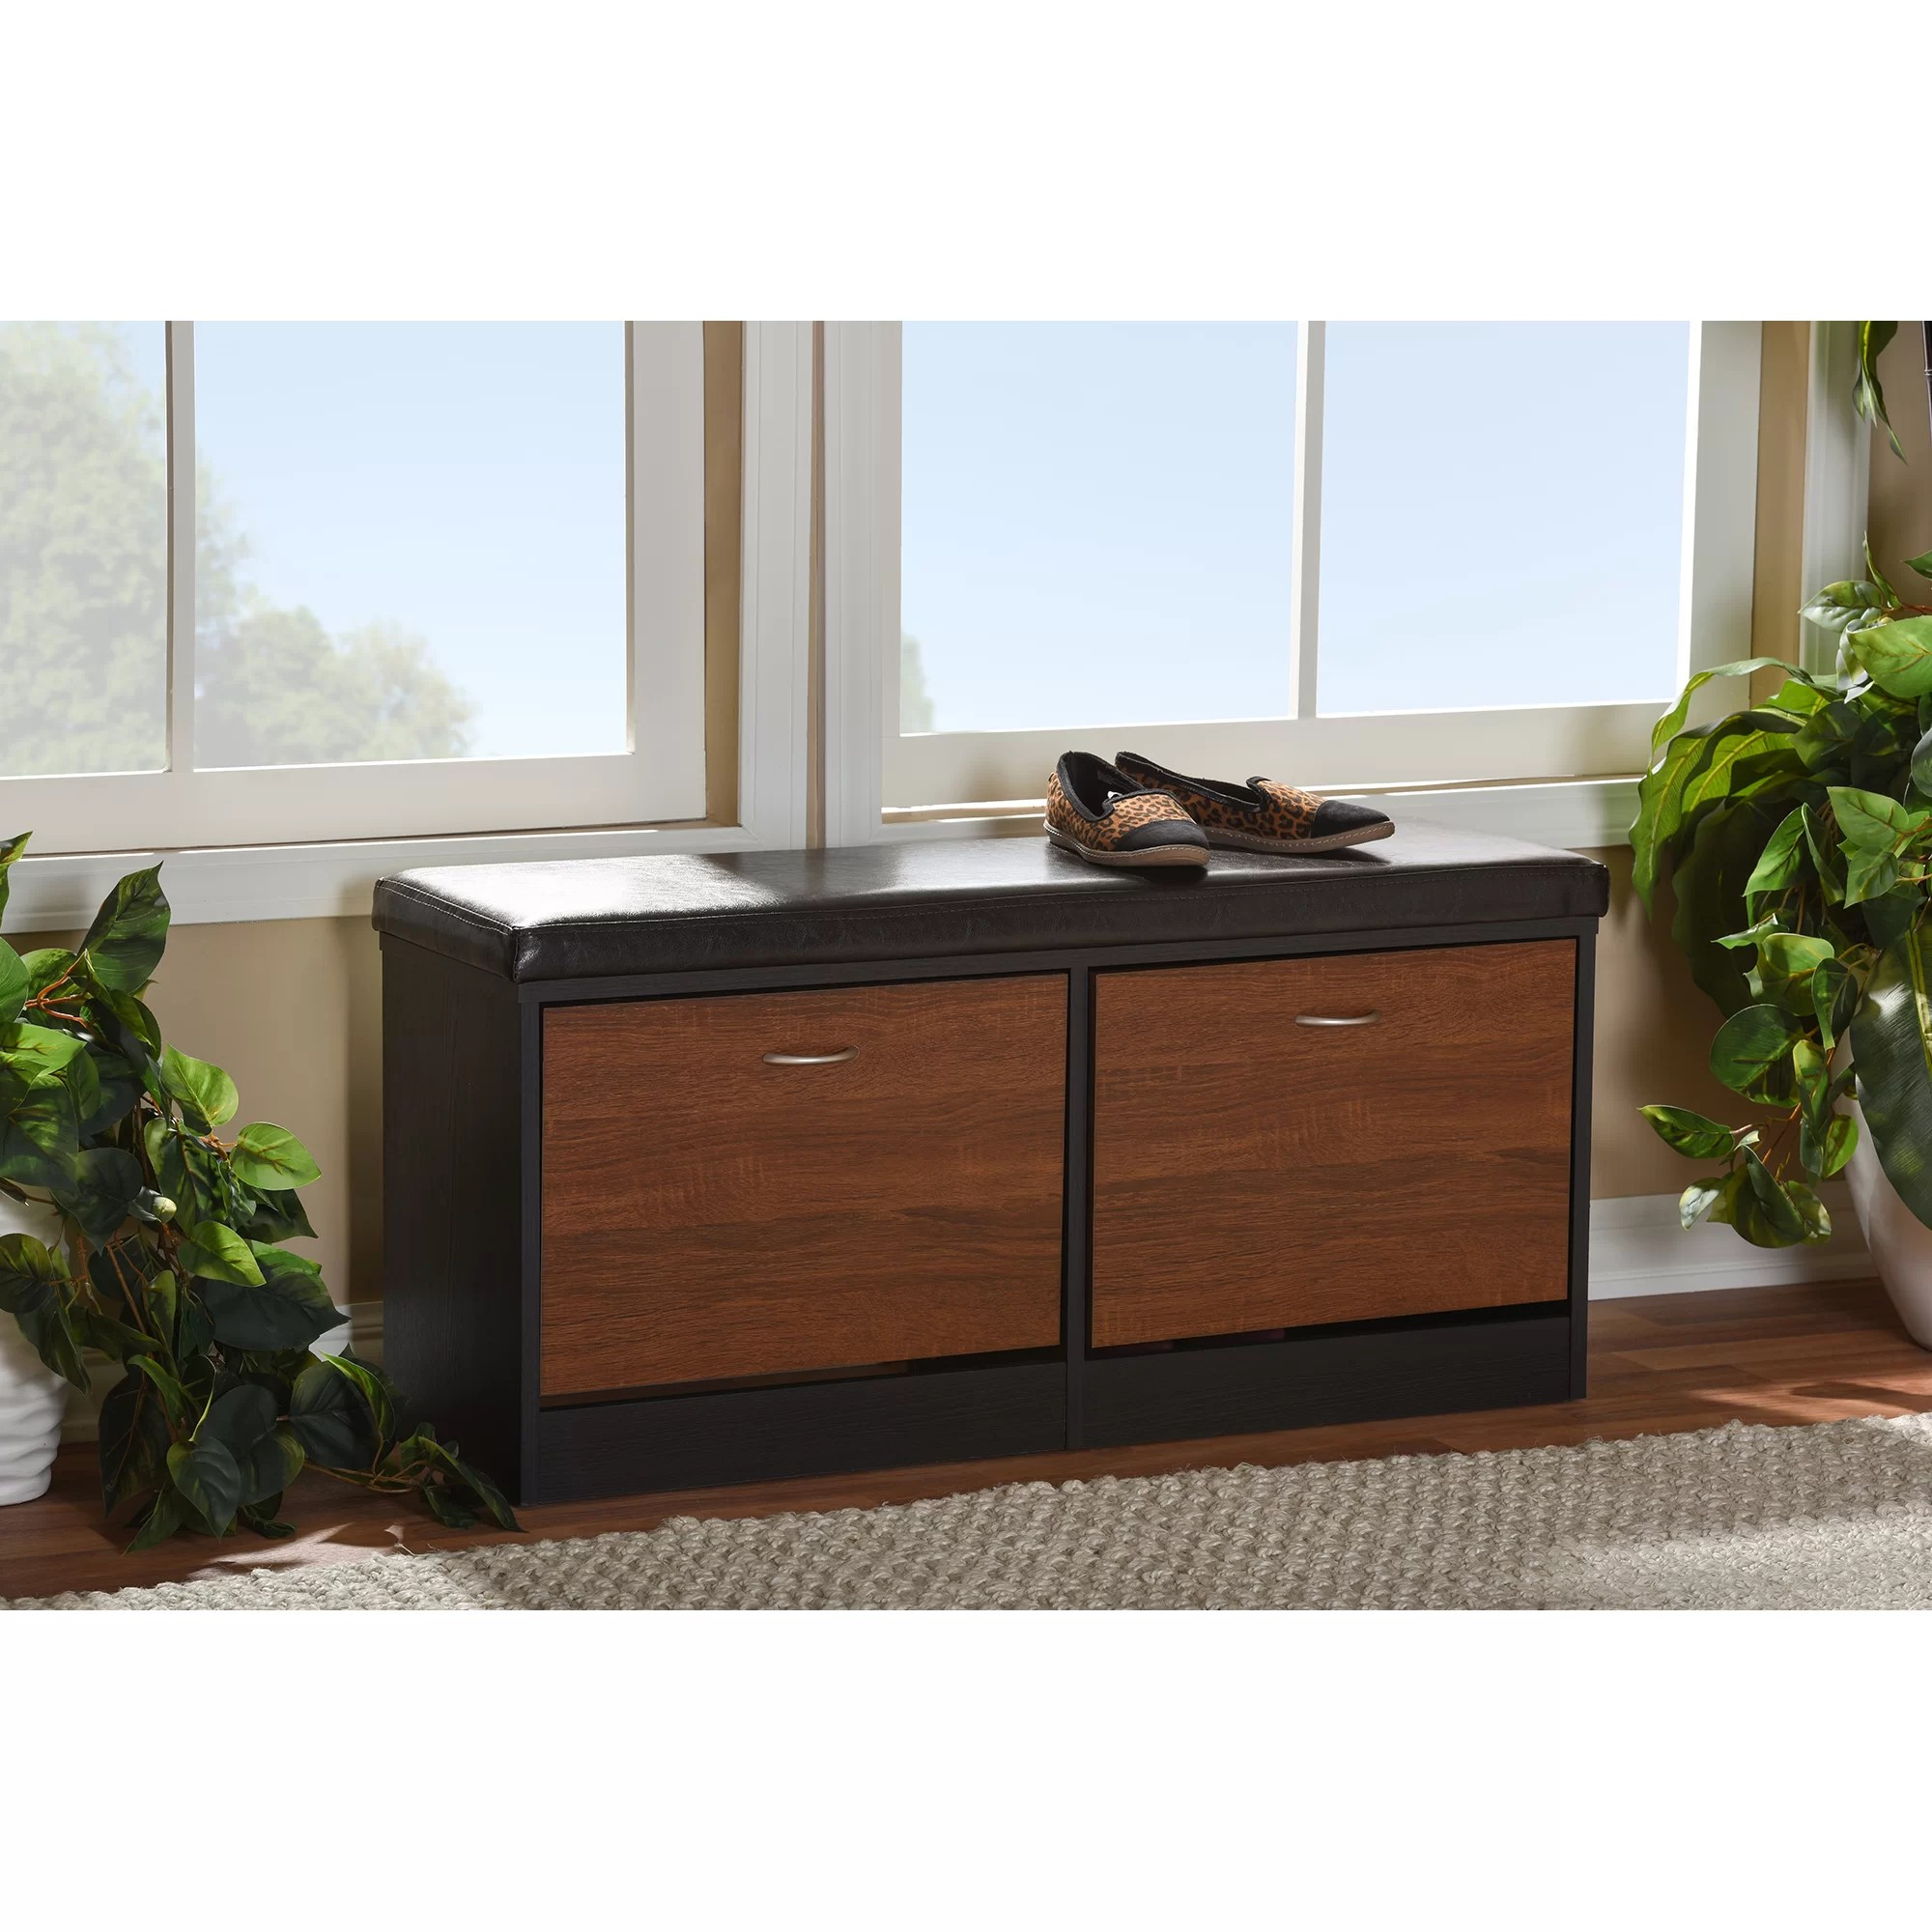 Modern Storage Benches Listitdallas